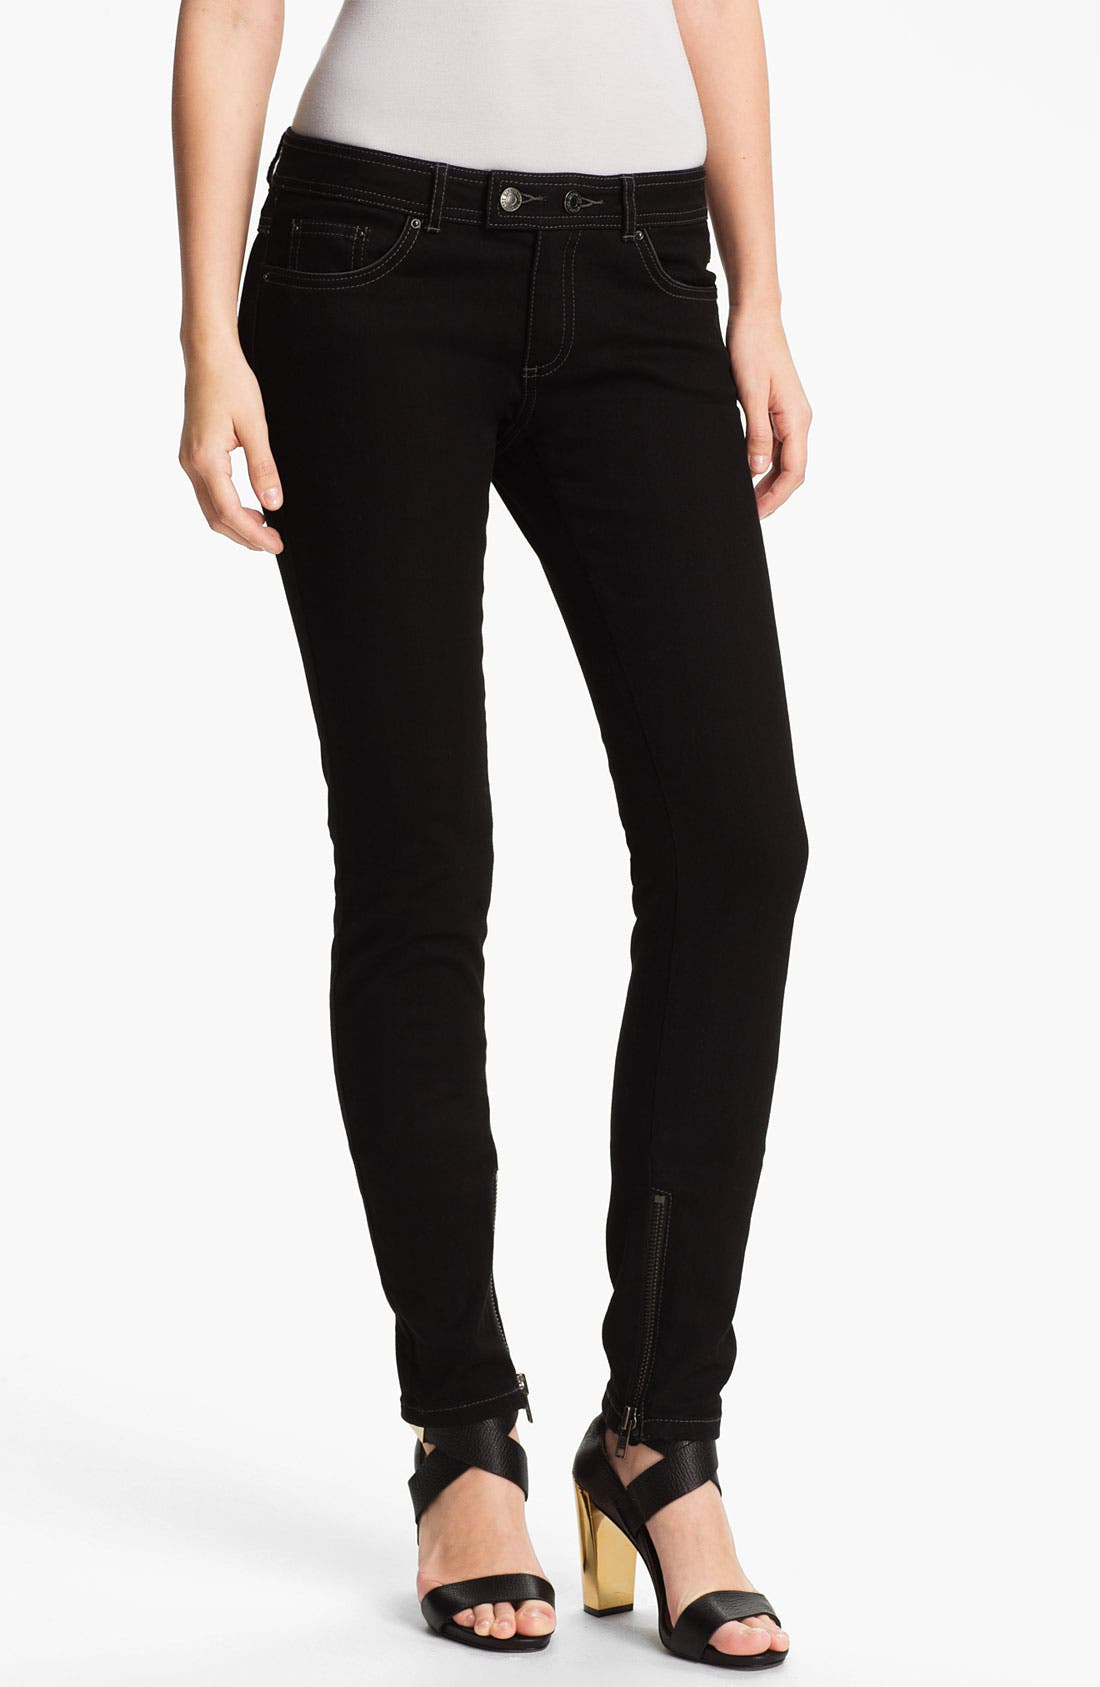 Main Image - Rachel Zoe 'Julie' Piped Detail Skinny Stretch Jeans